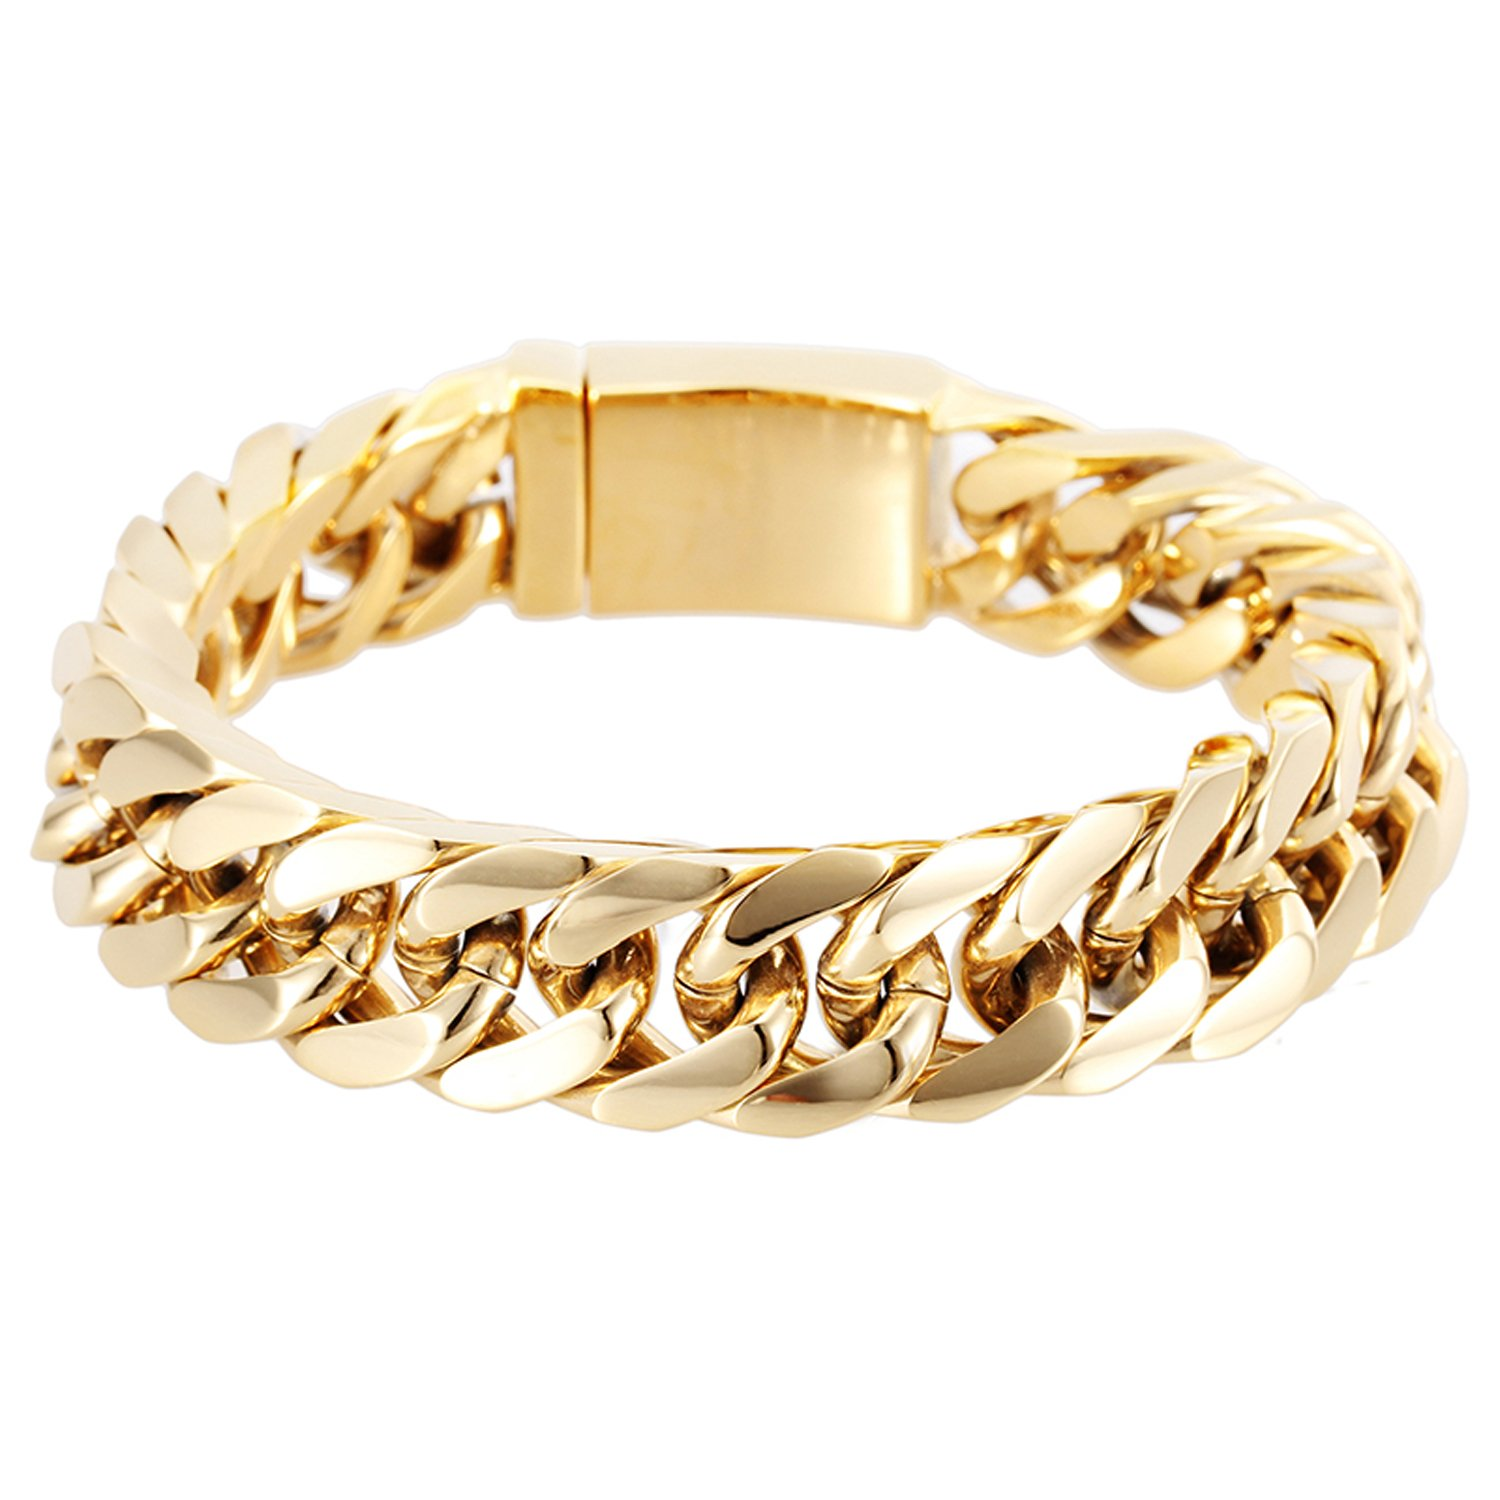 18K Gold Layered Chain Bracelet for Men 14MM Premium Fashion Jewelry, Resists Tarnishing, US Made 8Inches